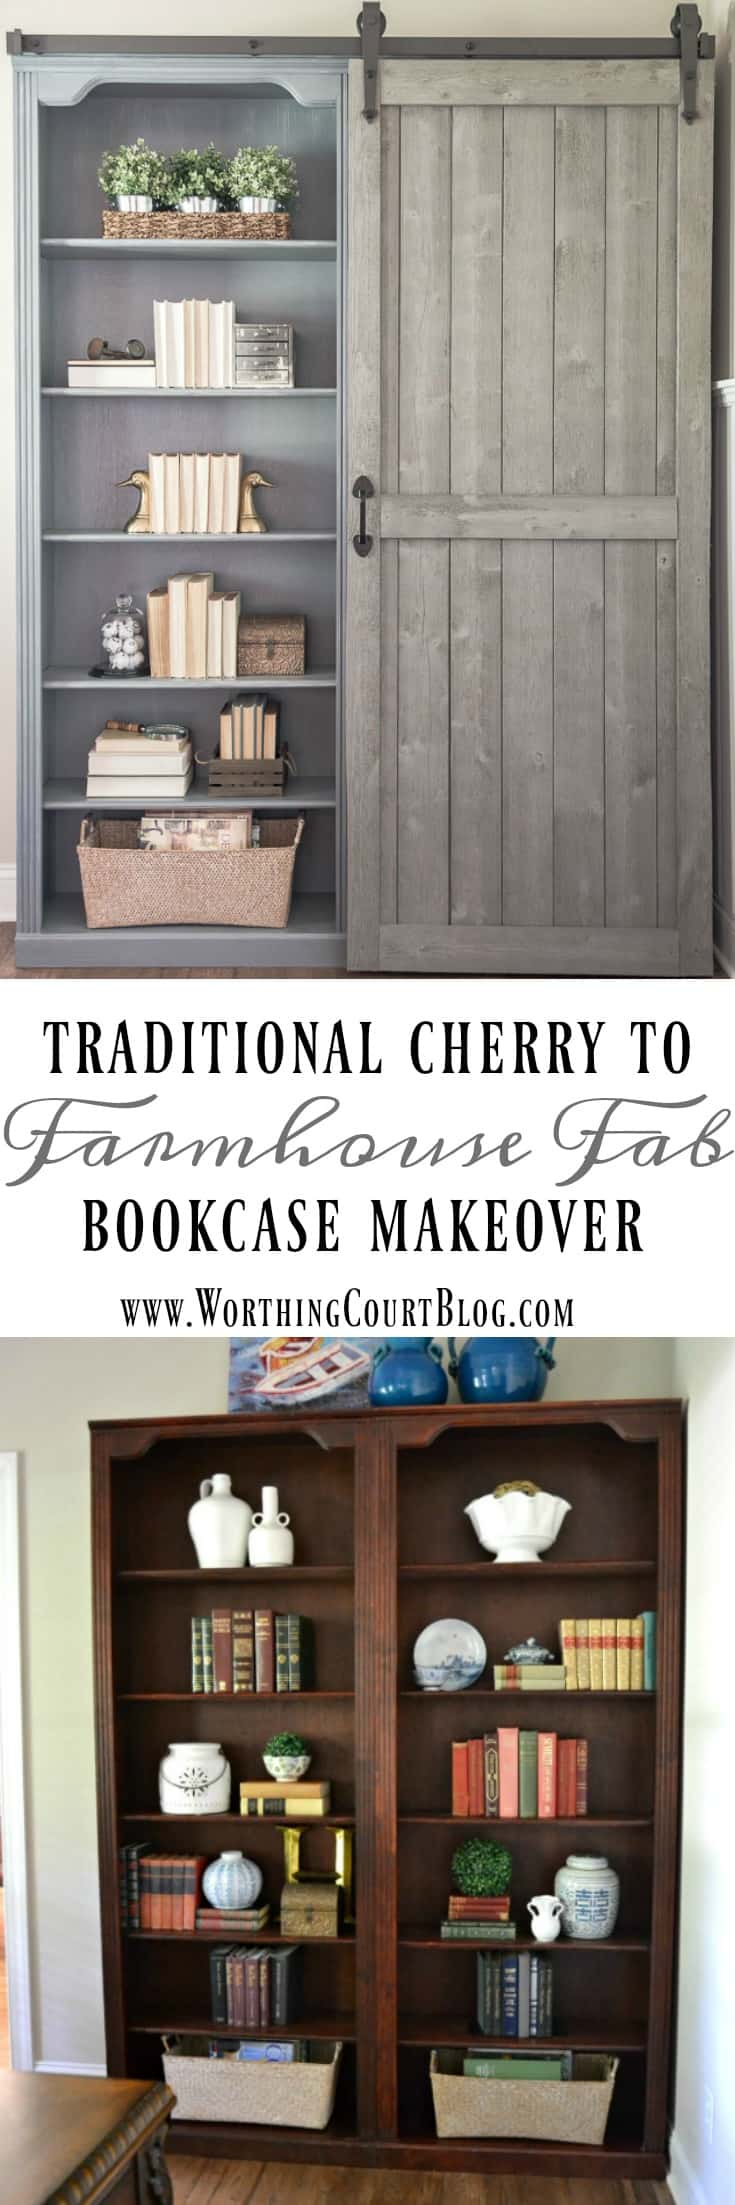 Traditional Cherry Bookcase Makeover With A Diy Sliding Barn Door ||  Worthing Court